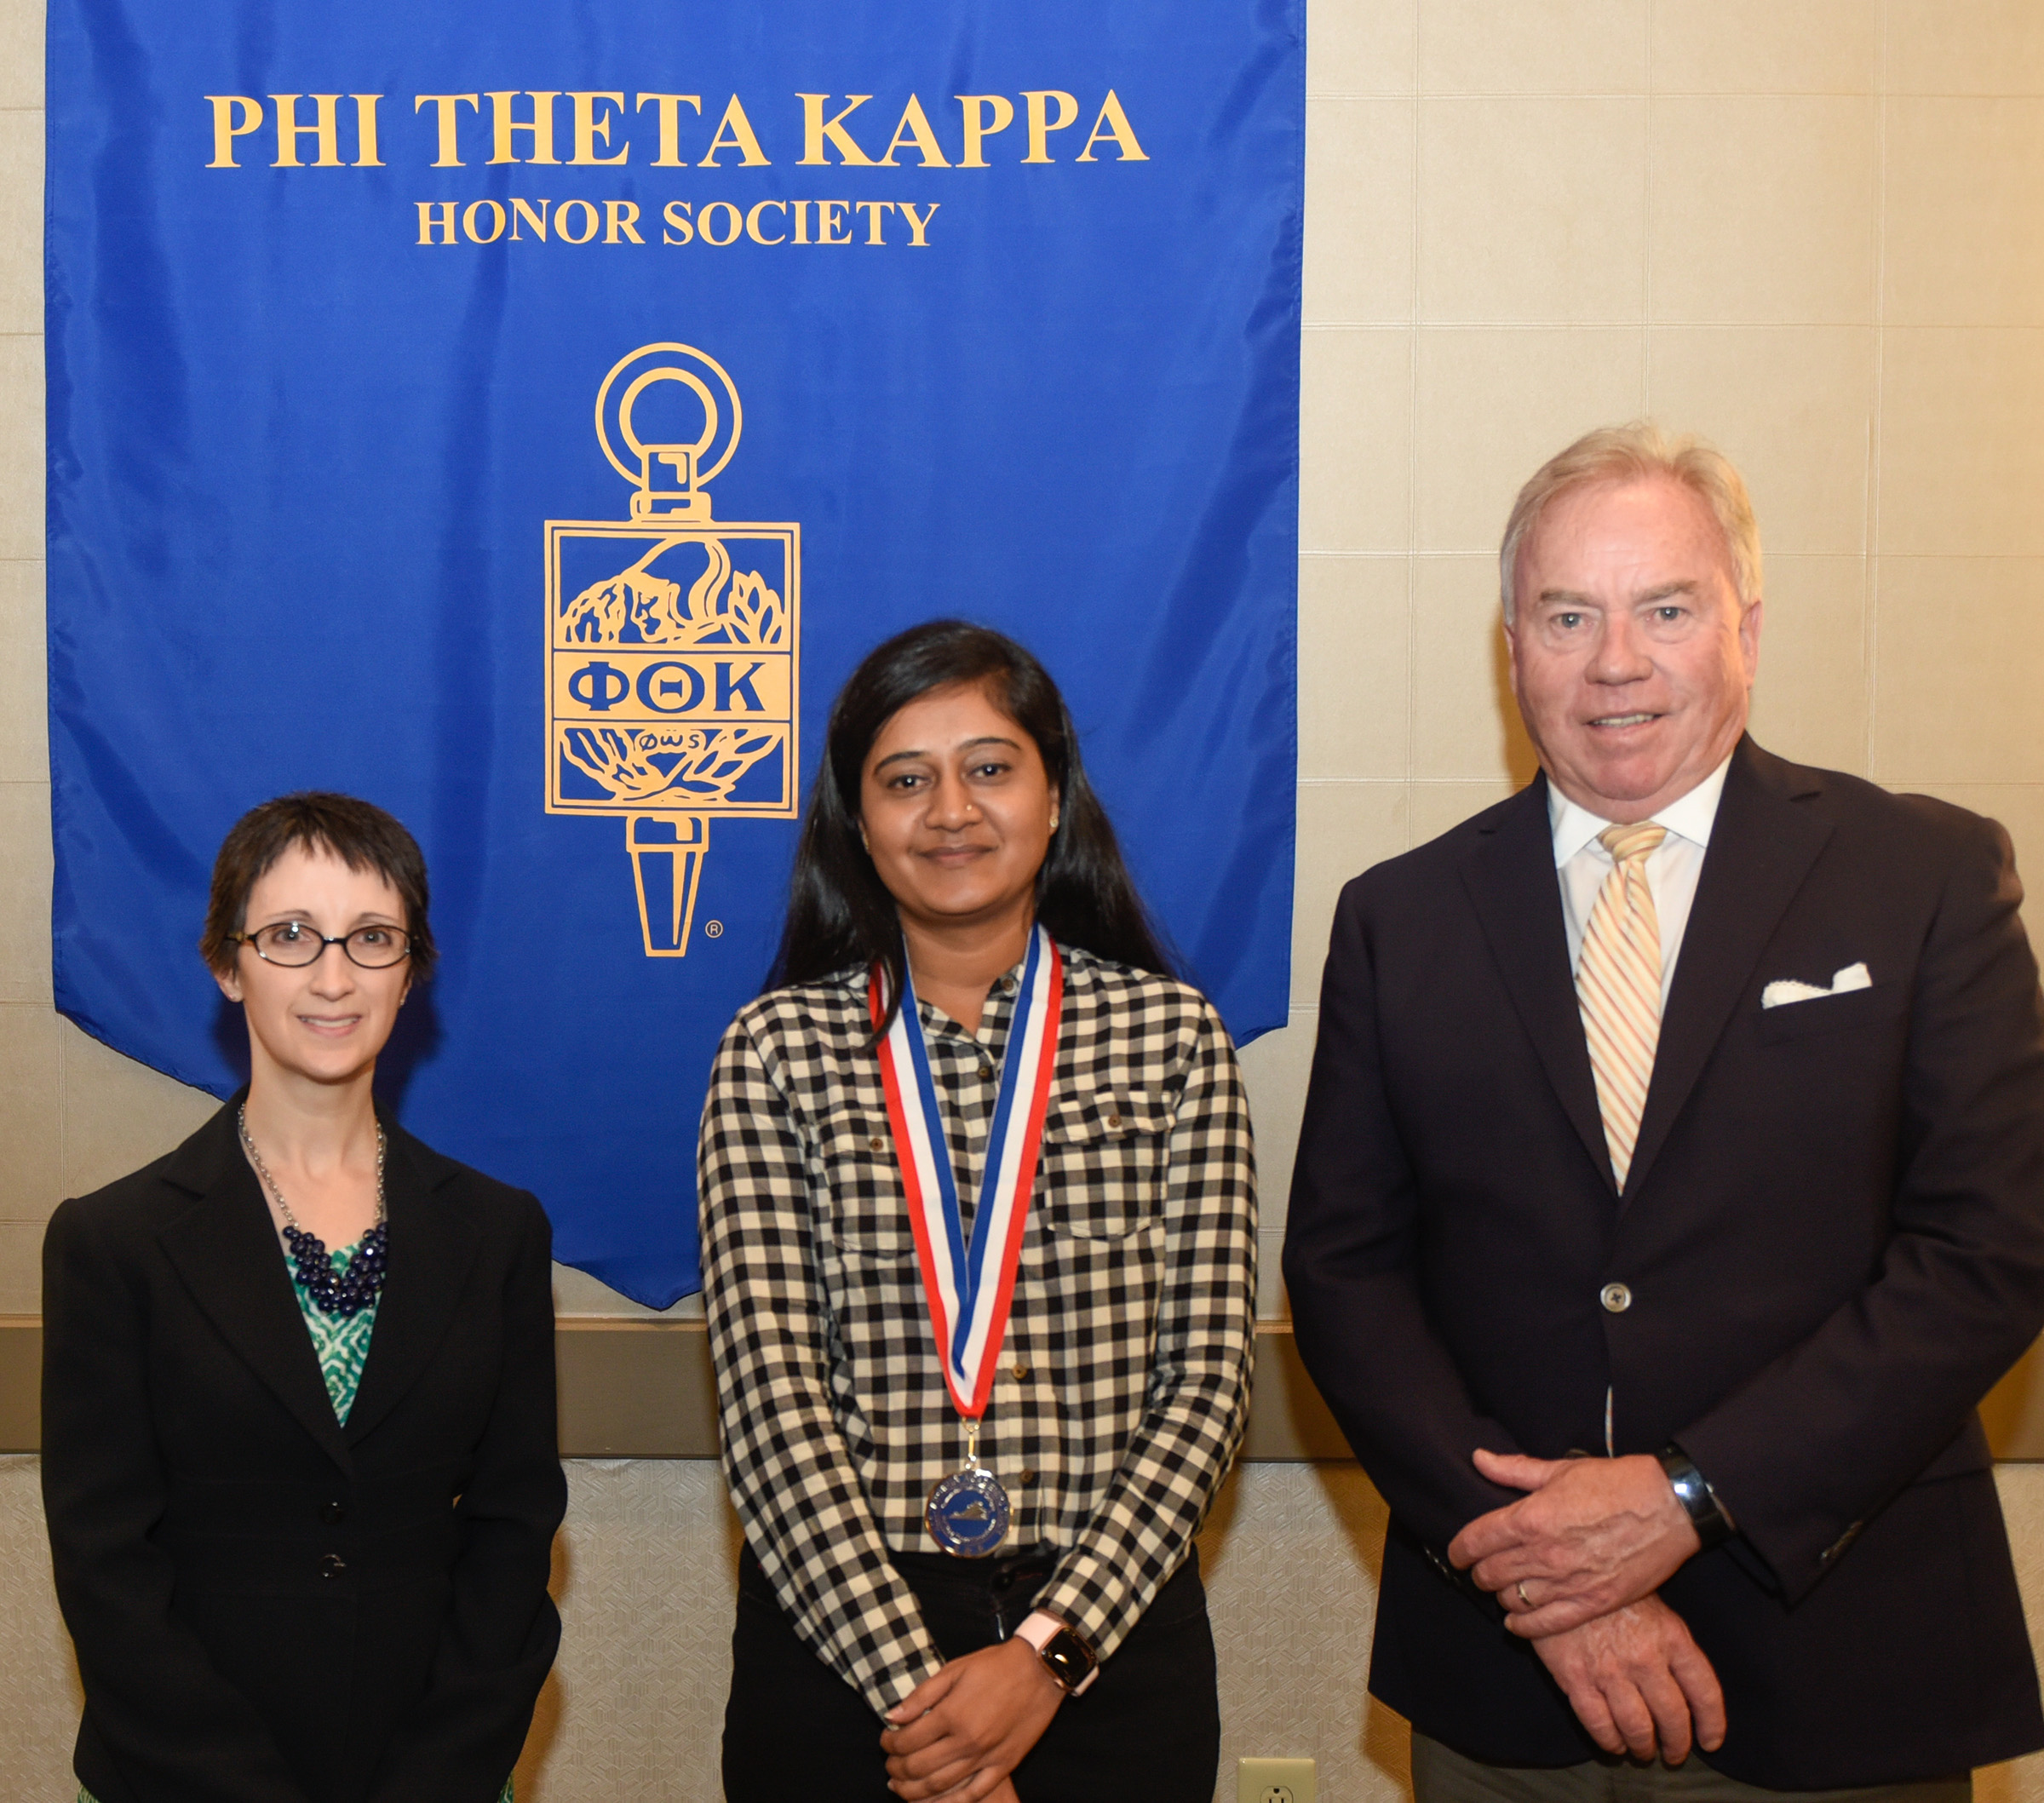 Paul D. Camp Community College students among those Phi Theta Kappa members recognized in Richmond